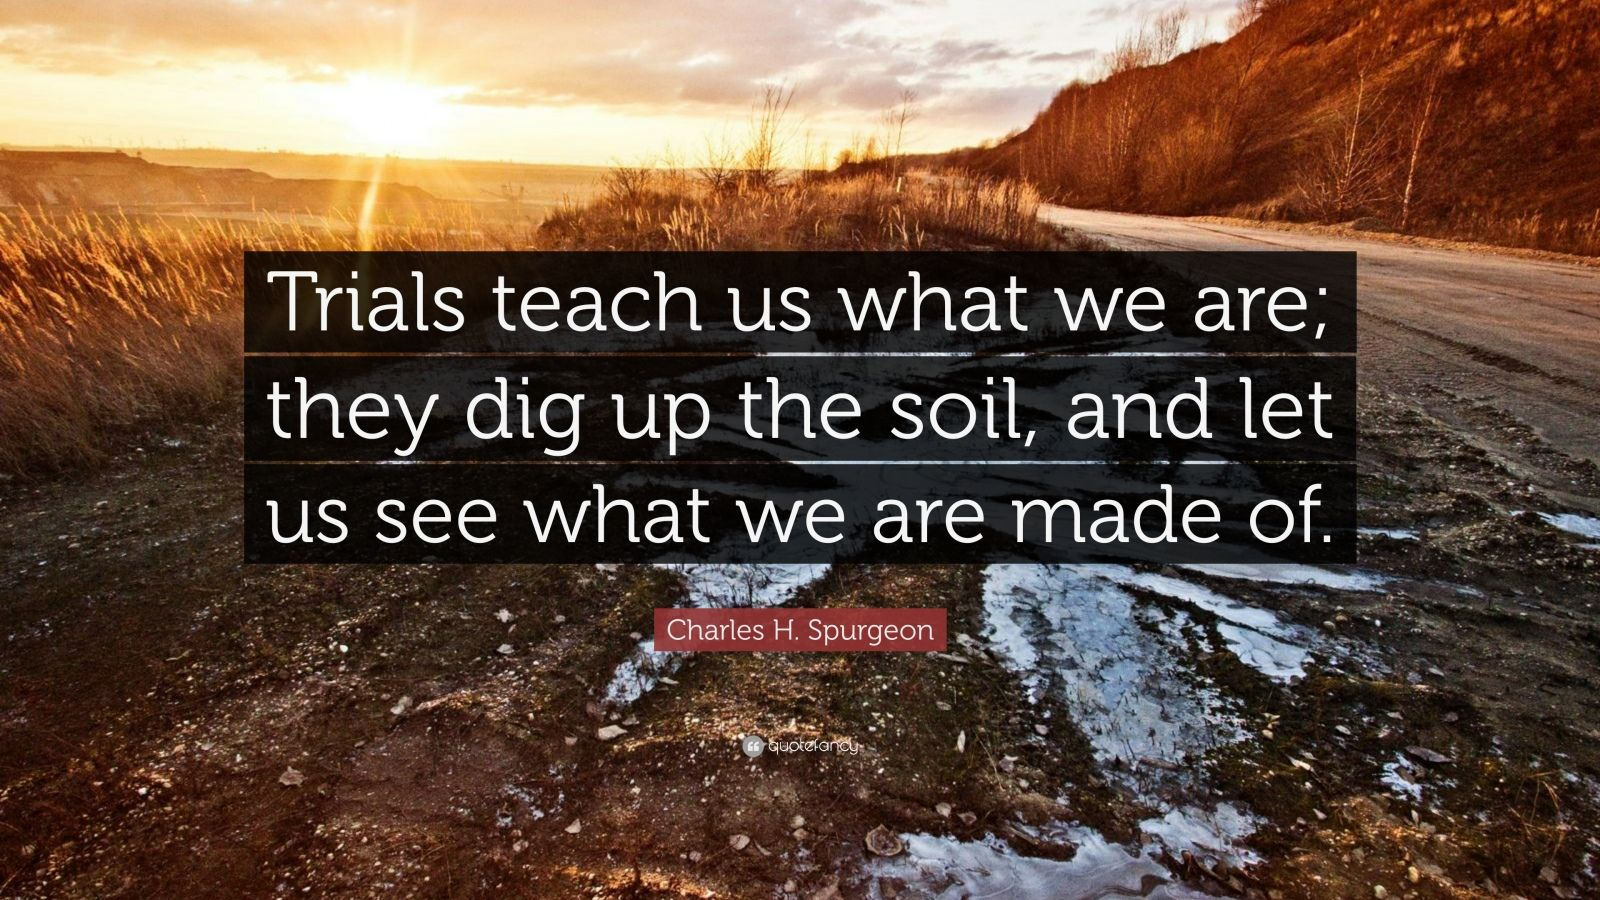 """Charles H. Spurgeon Quote: """"Trials teach us what we are; they dig up the soil, and let us see what we are made of."""""""